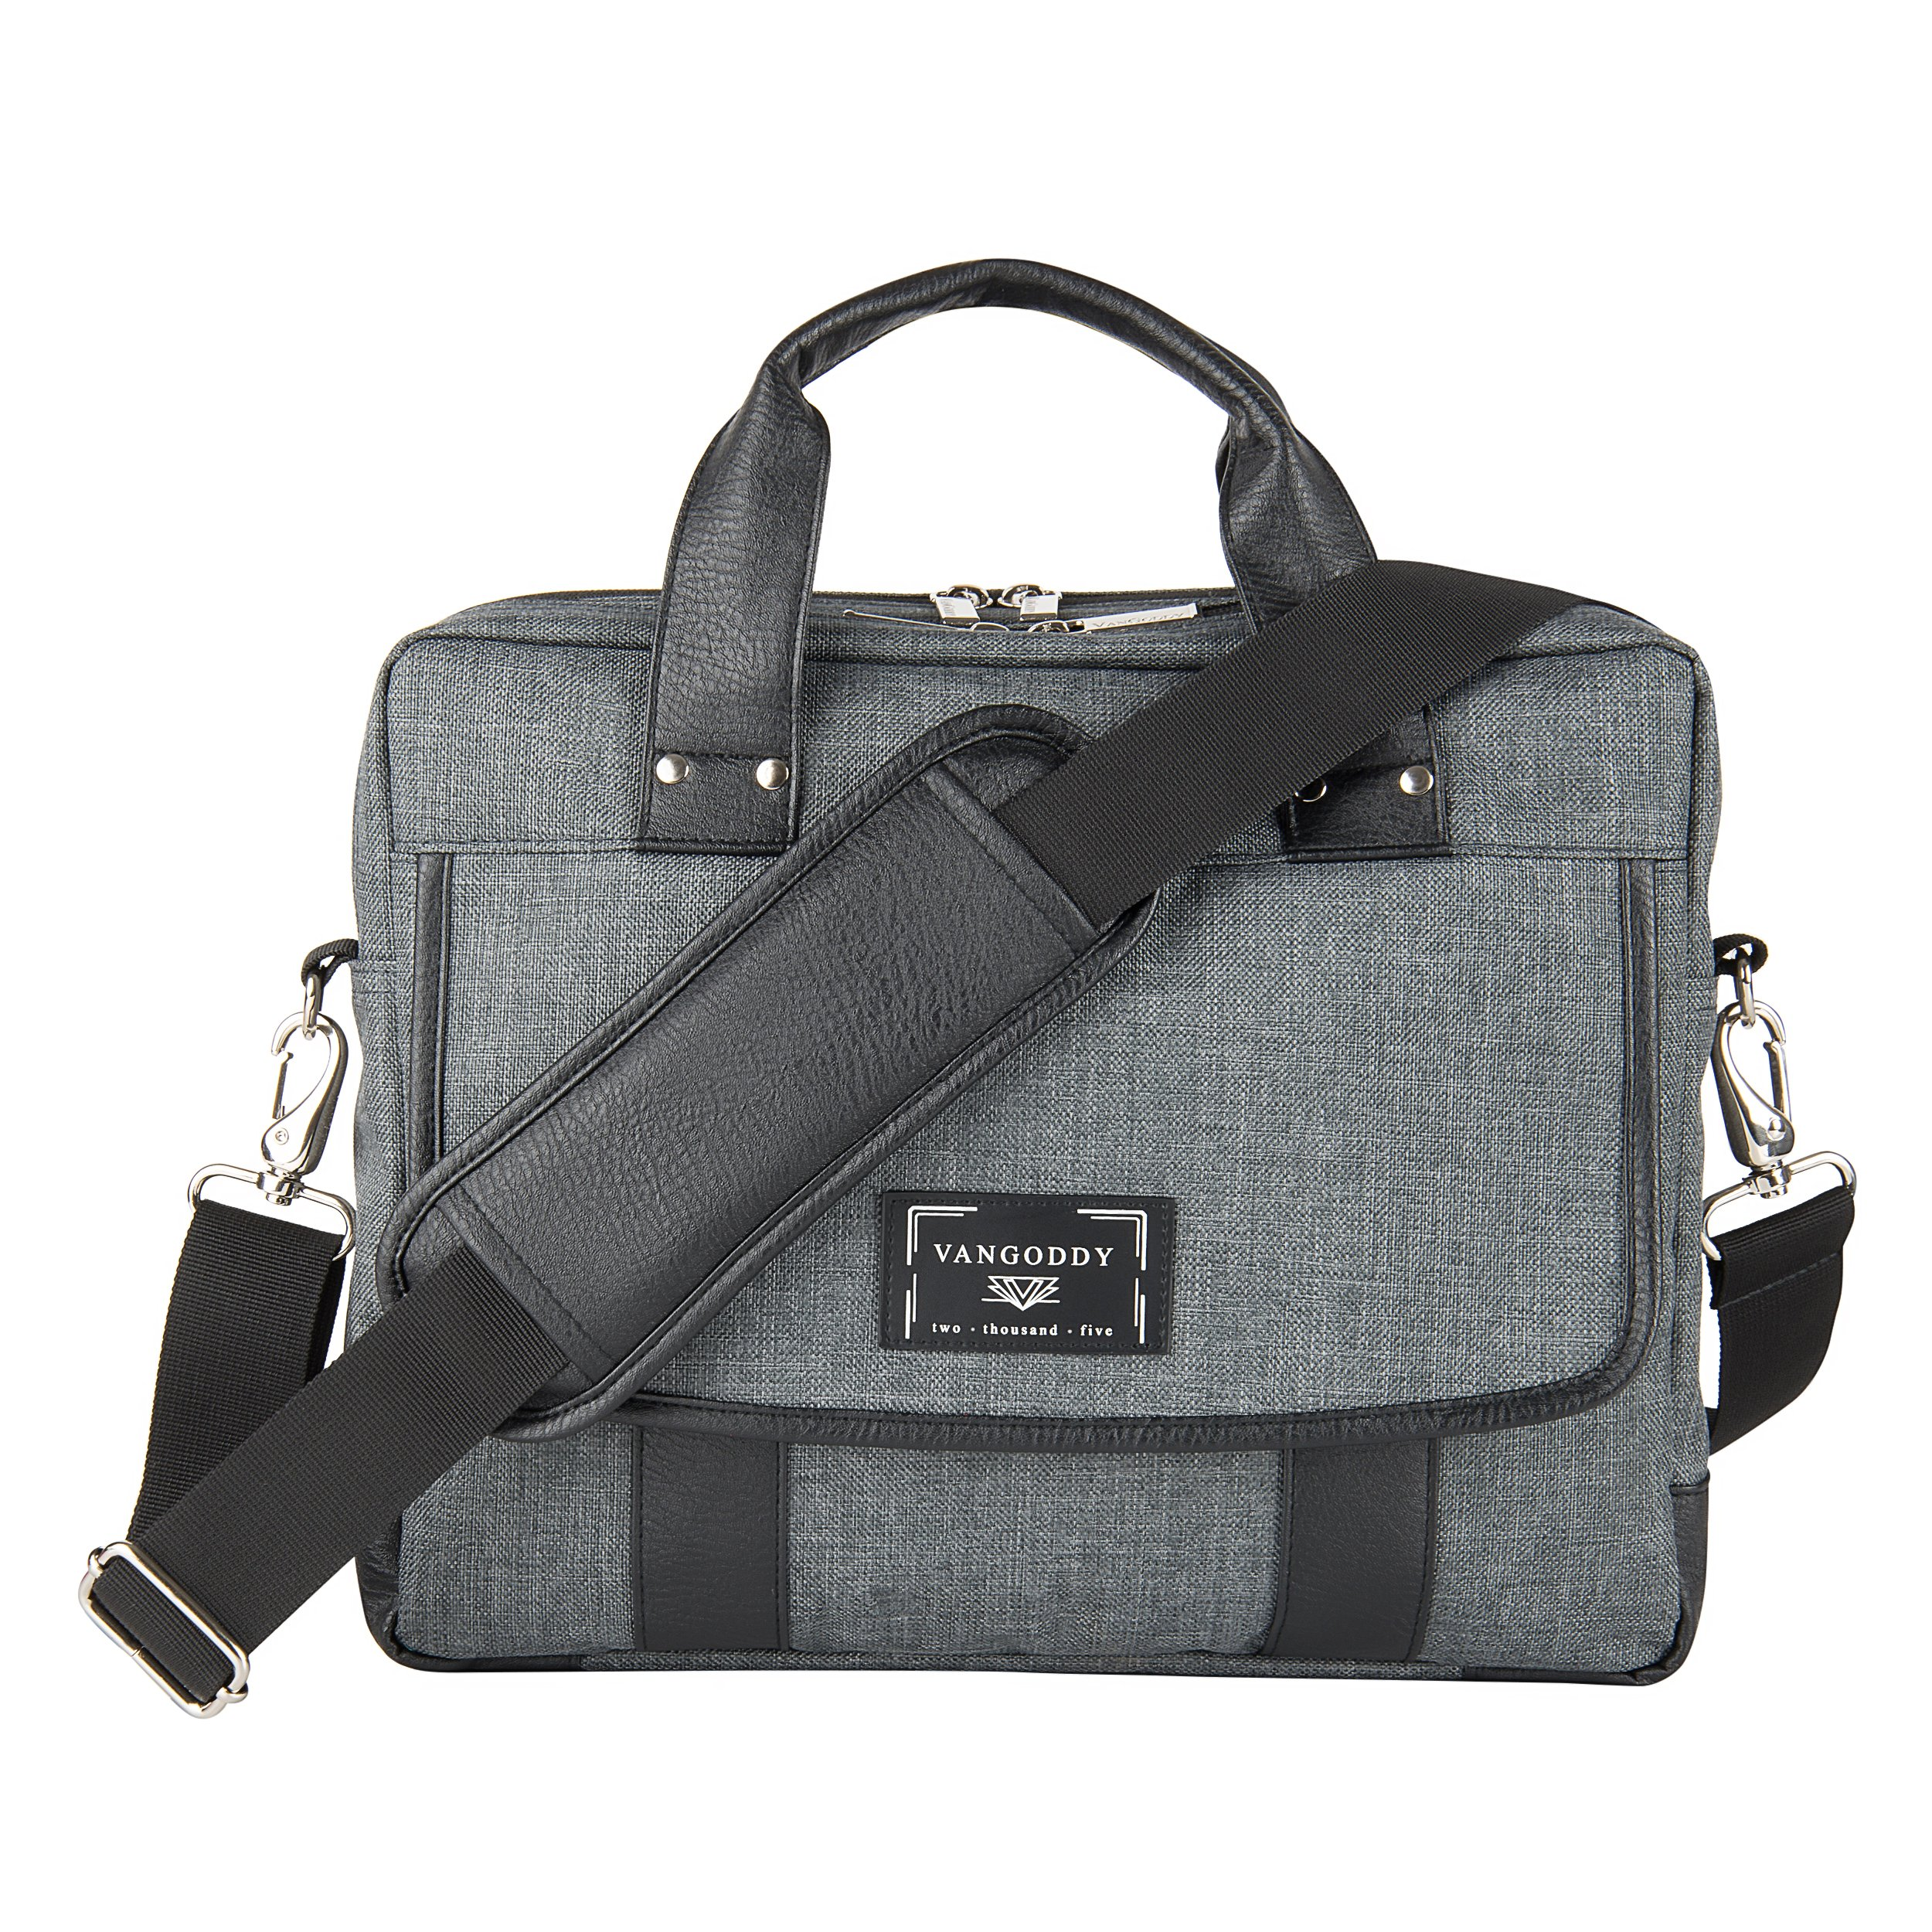 Reid School Business Travel Bag For Lenovo 13.3'' - 14'' 2in1 Laptop Tablet Computers